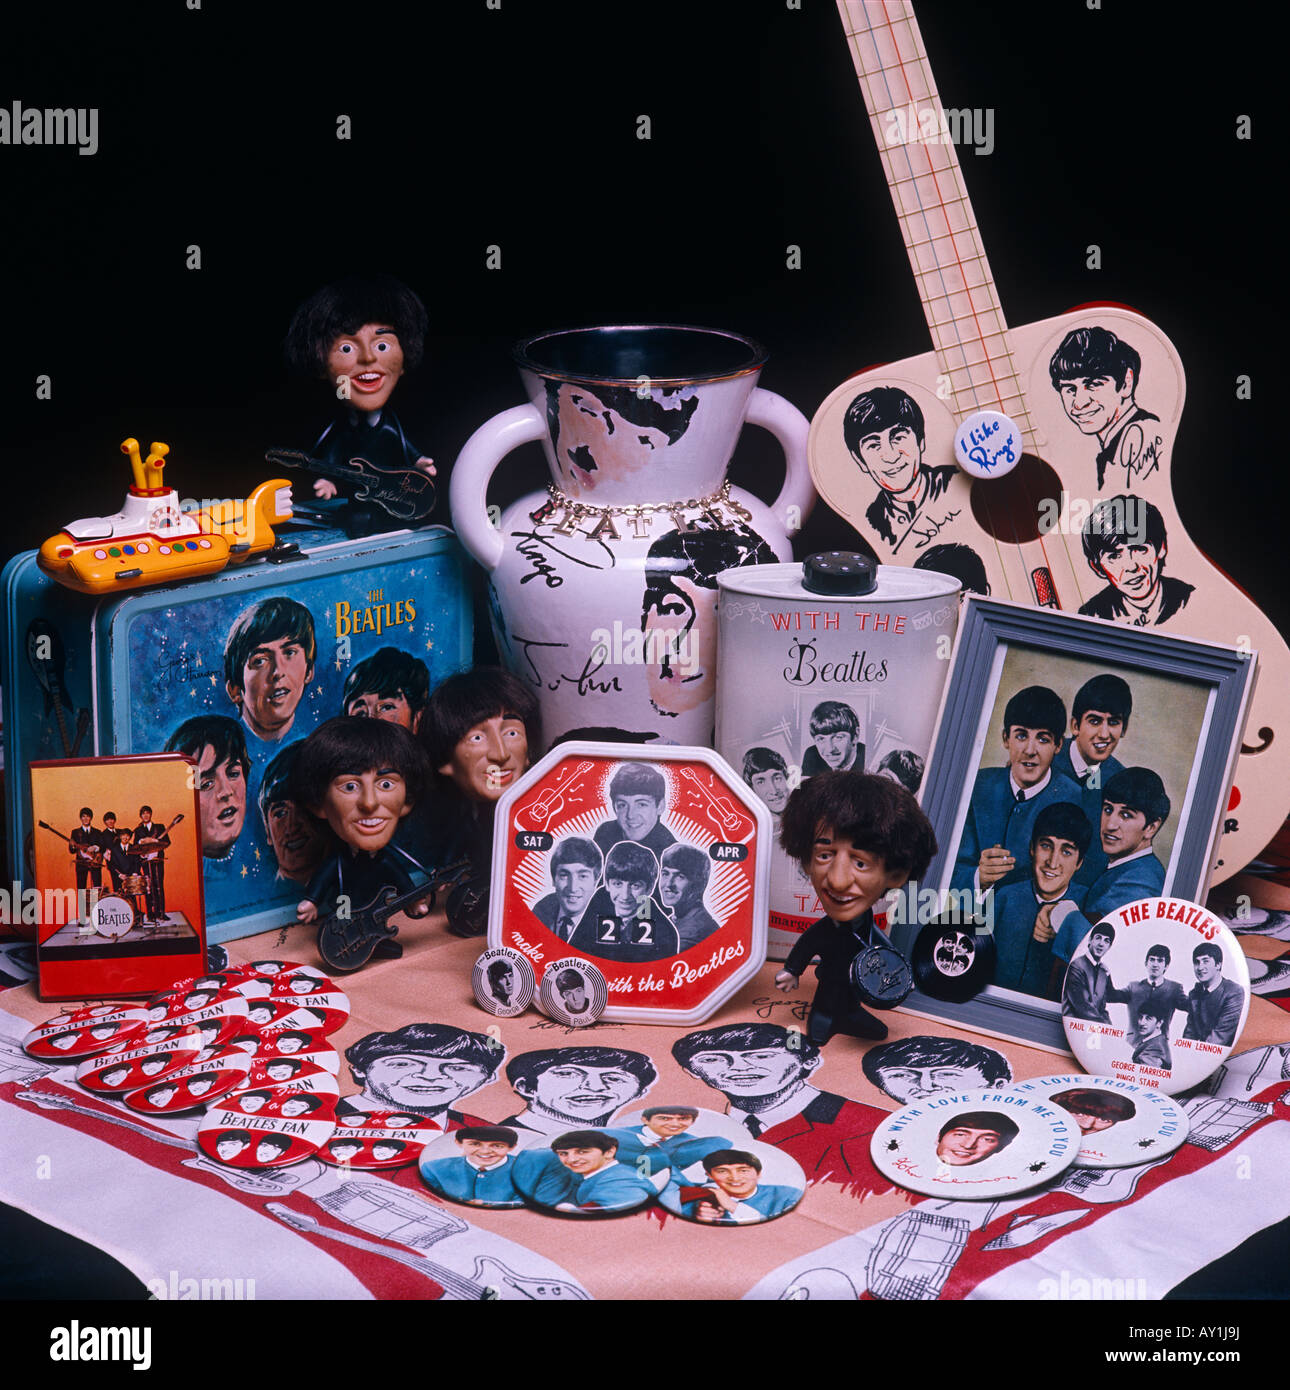 Beatles memorabilia and collectables - Stock Image